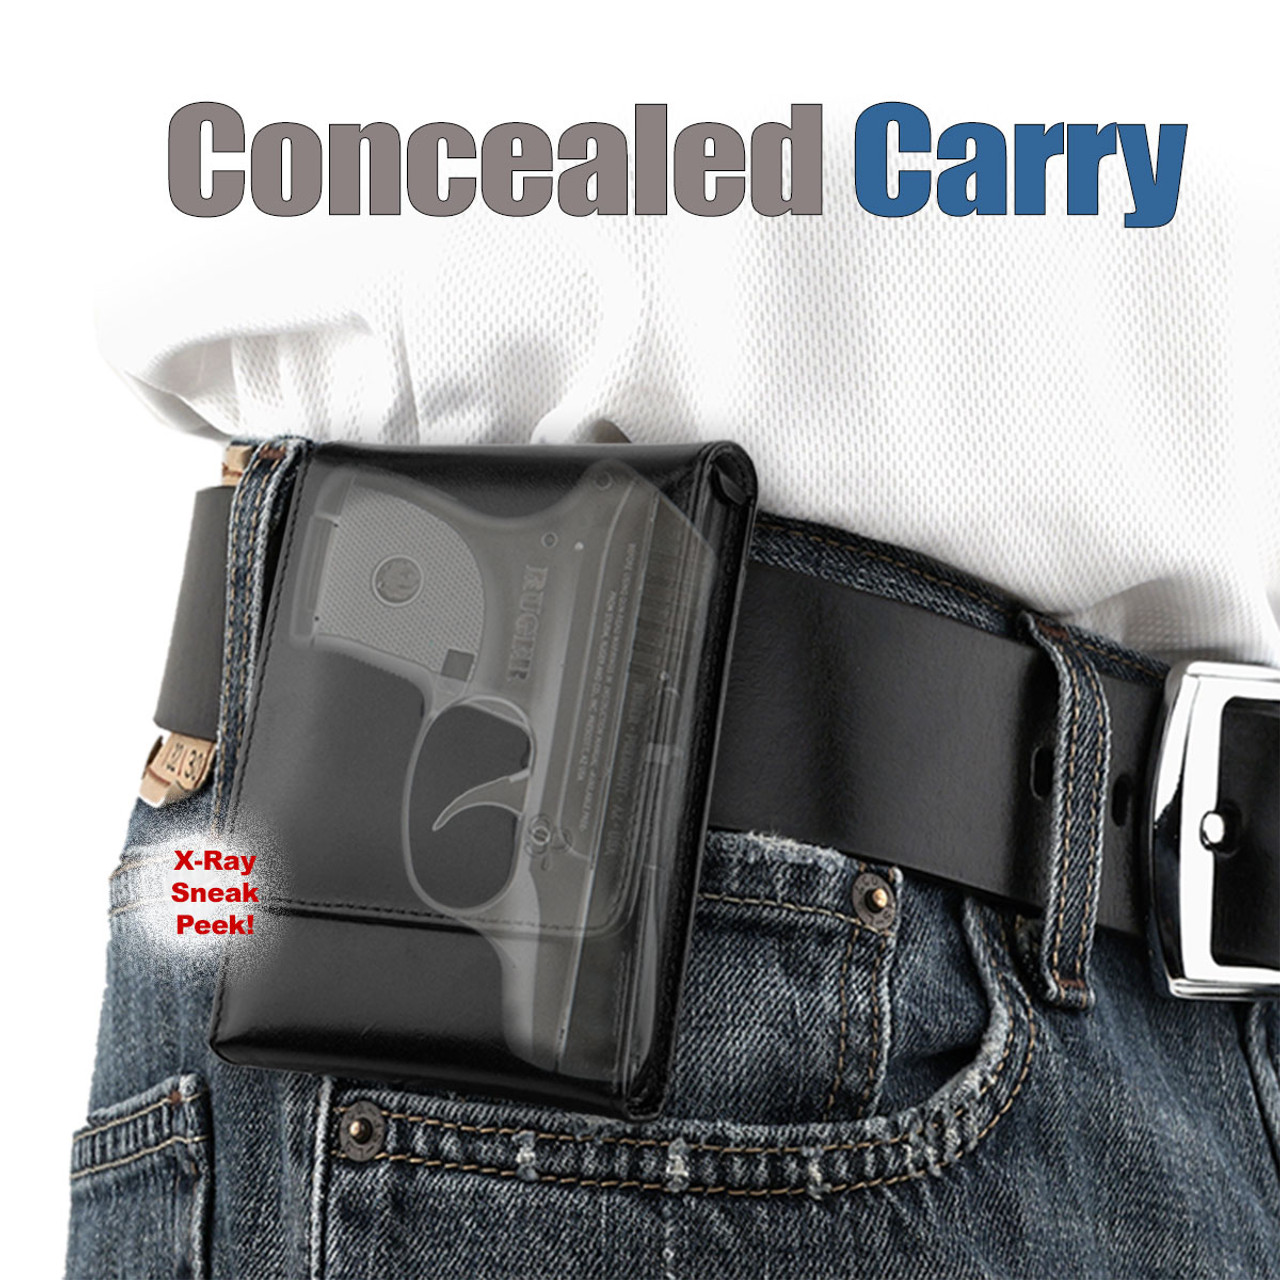 Kahr MK40 Concealed Carry Holster (Belt Loop)